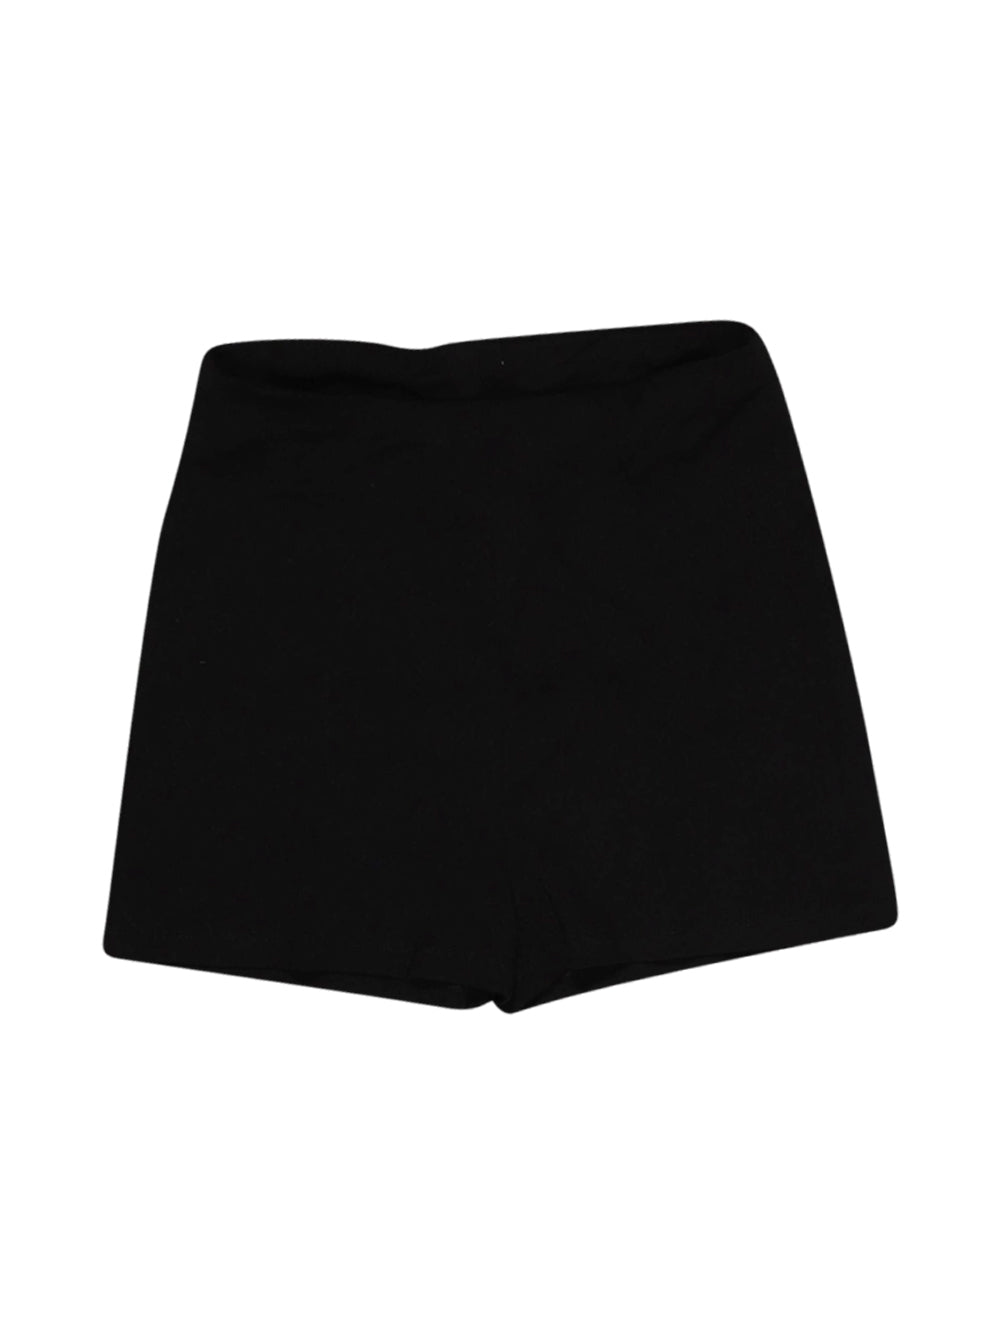 Front photo of Preloved Asos Black Woman's shorts - size 10/M